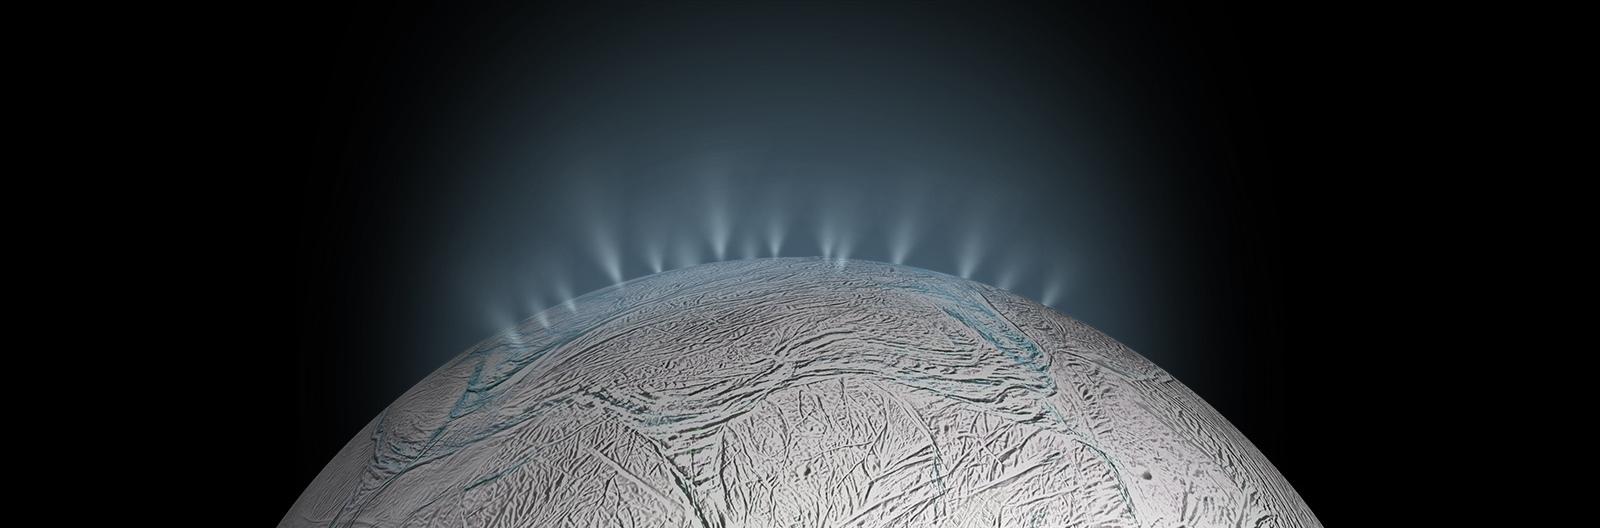 Scientists didn't know why Enceladus was the brightest world in the solar system, or how it related to Saturn's E ring. Cassini found that both the fresh coating on its surface, and icy material in the E ring originate from vents connected to a global subsurface saltwater ocean that might host hydrothermal vents. Image & Caption Credit: NASA / JPL-Caltech